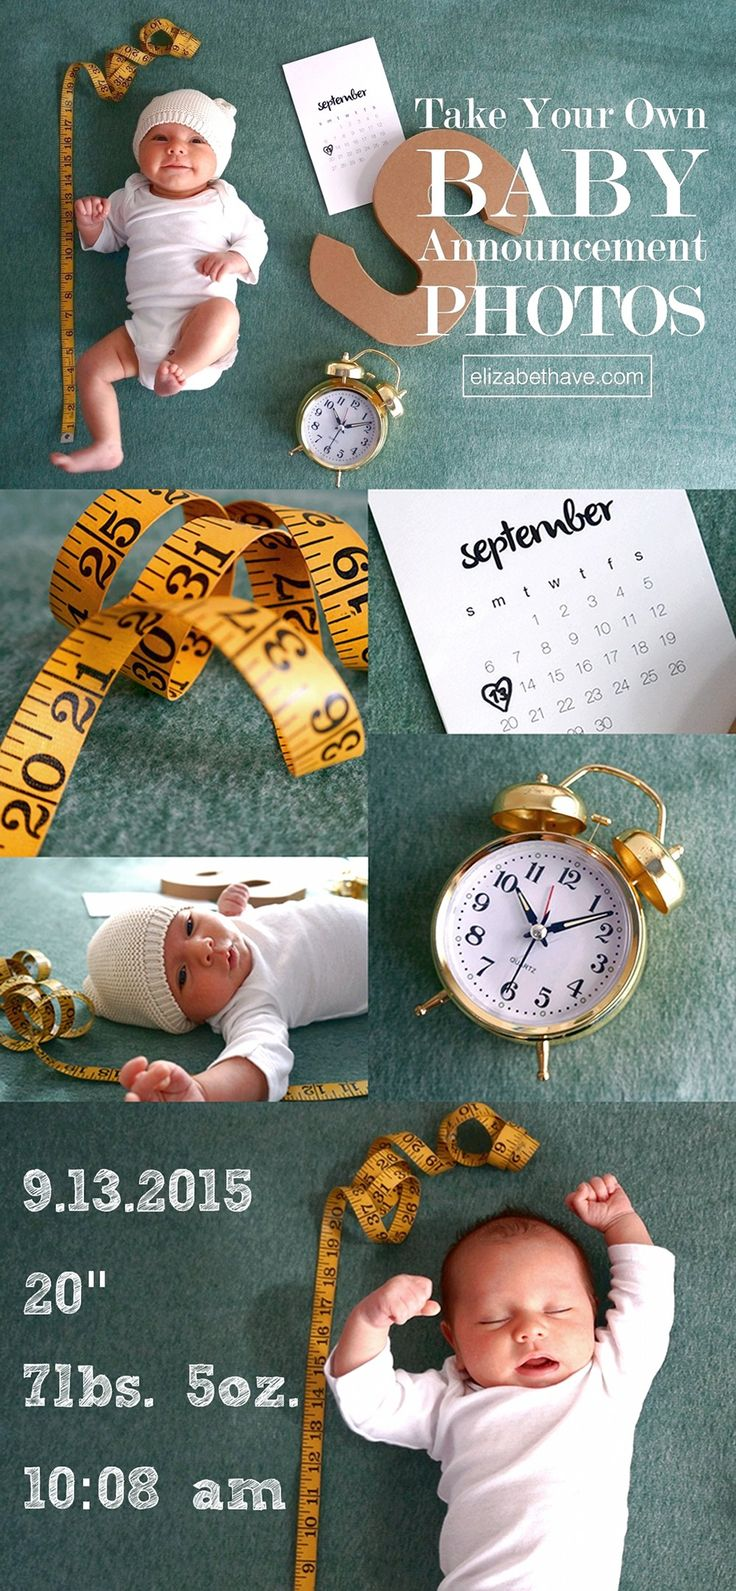 How to Take Your Own Baby Announcement Photos | After taking my own maternity photos, I decided to DIY my newborn announcements too instead of hiring a photographer. Here are the results and a tutorial on how to do it yourself! Plus a round up of other cute infant photography and birth announcements in case you need some inspiration to get your juices flowing. | www.elizabethave.com